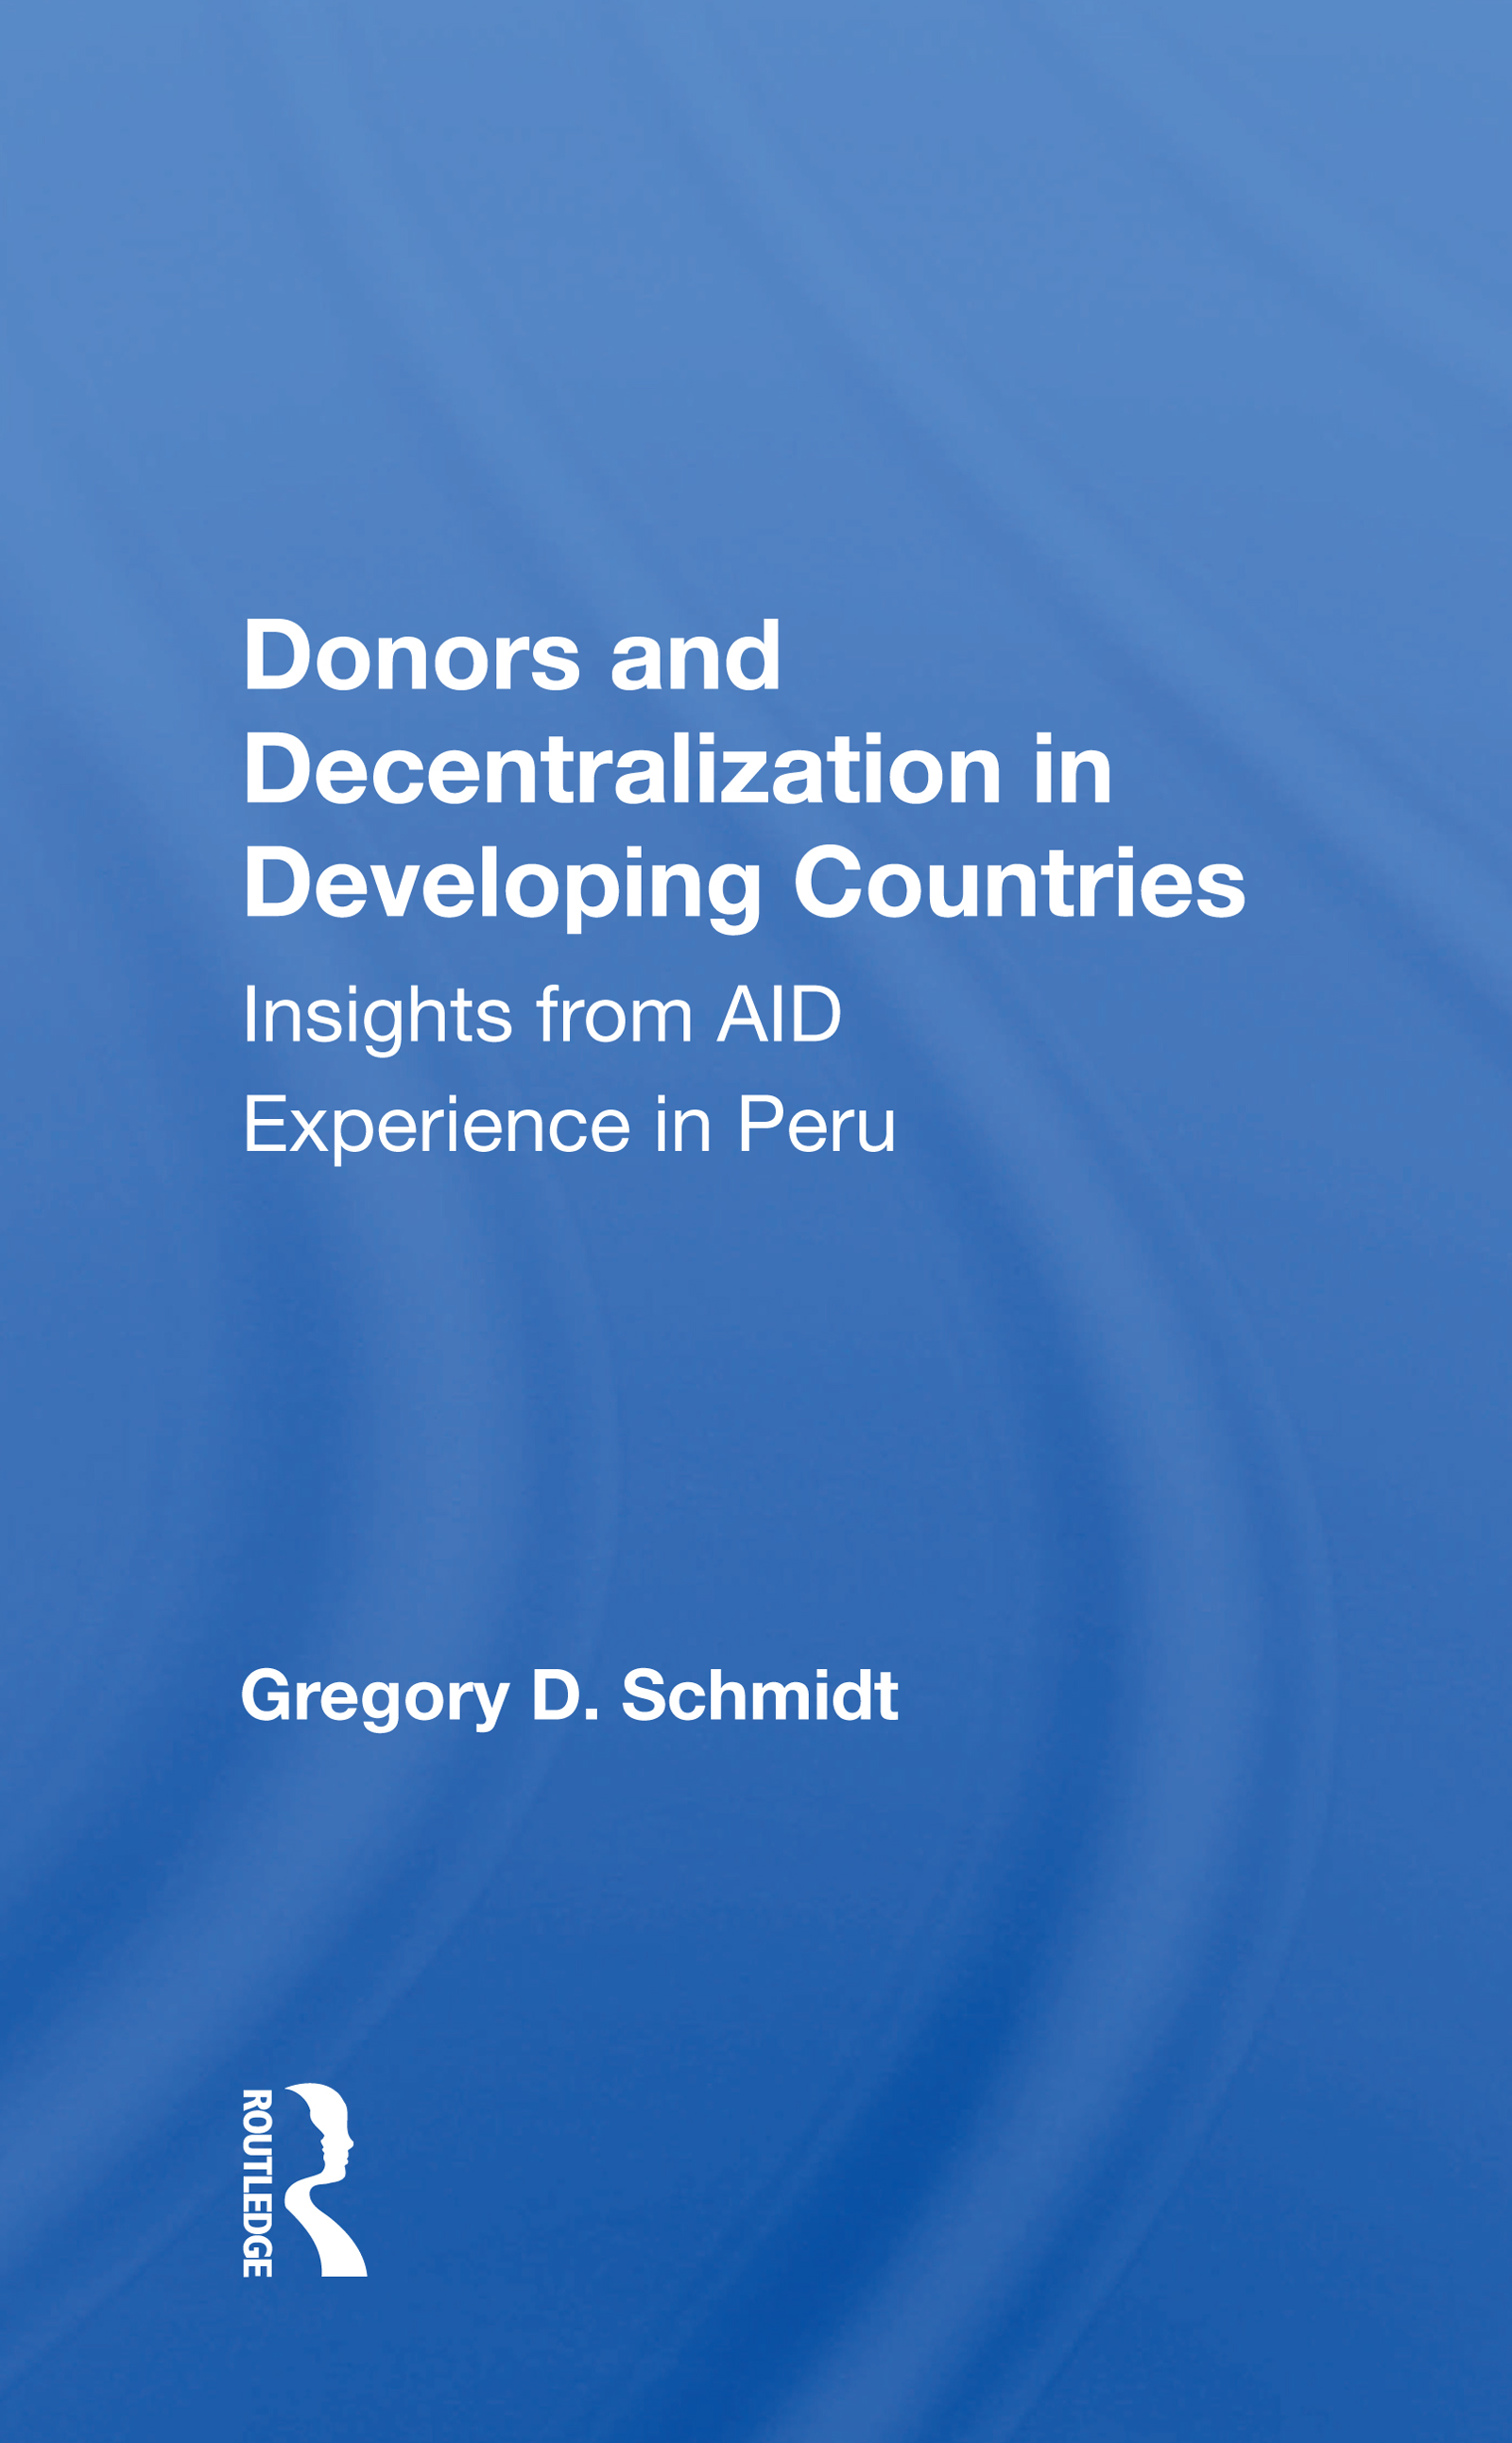 Donors and Decentralization in Developing Countries